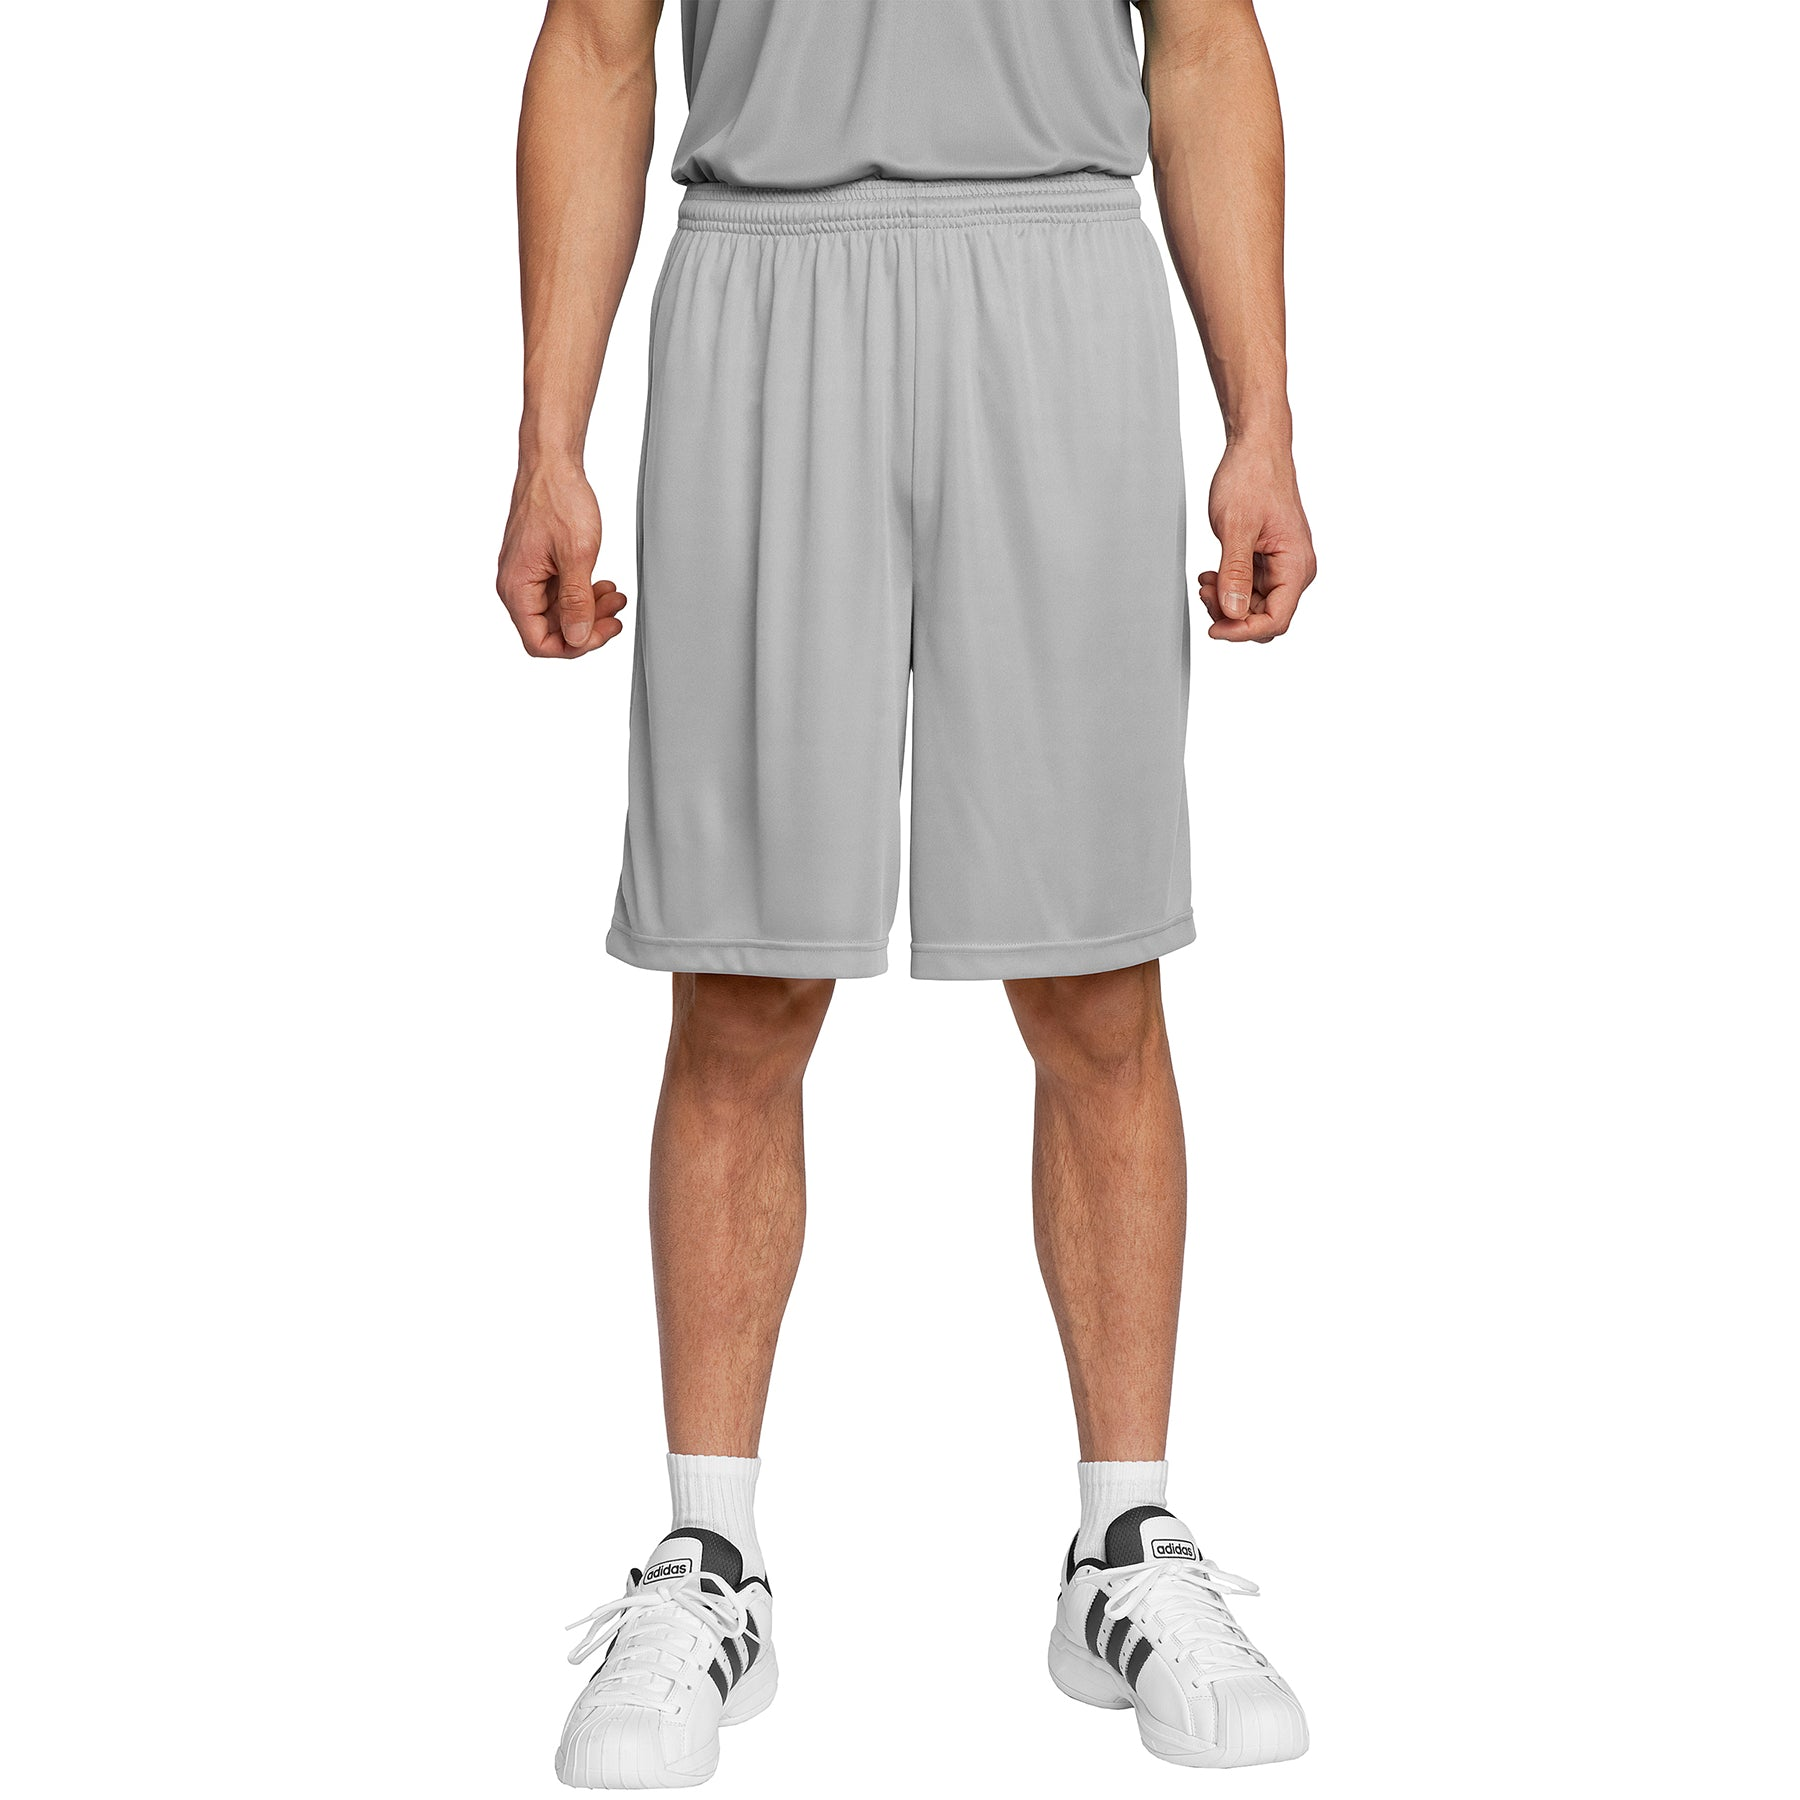 Men's PosiCharge Competitor Short Silver Front